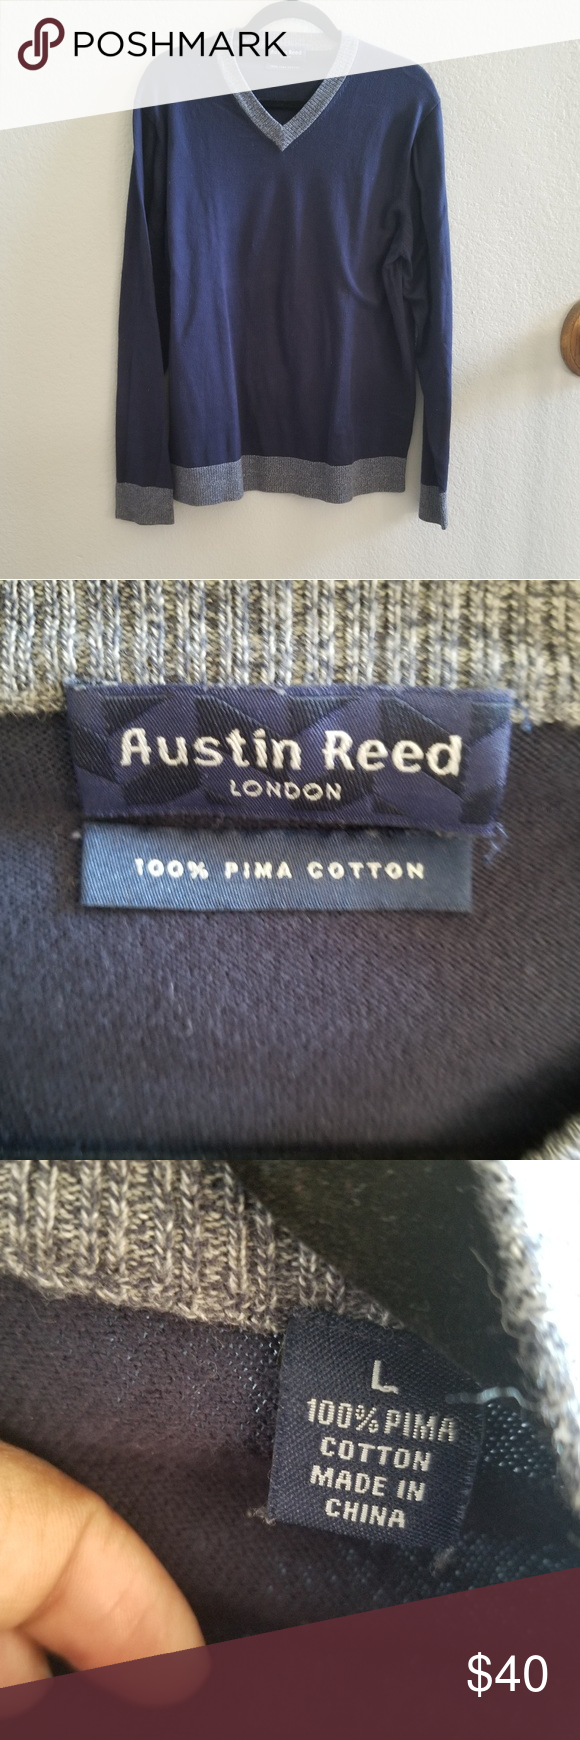 Austin Reed Cotton V Neck Sweater Austin Reed Cotton V Neck Sweater Excellent Condition Austin Reed Sweaters V Neck Vneck Sweater Austin Reed Austin